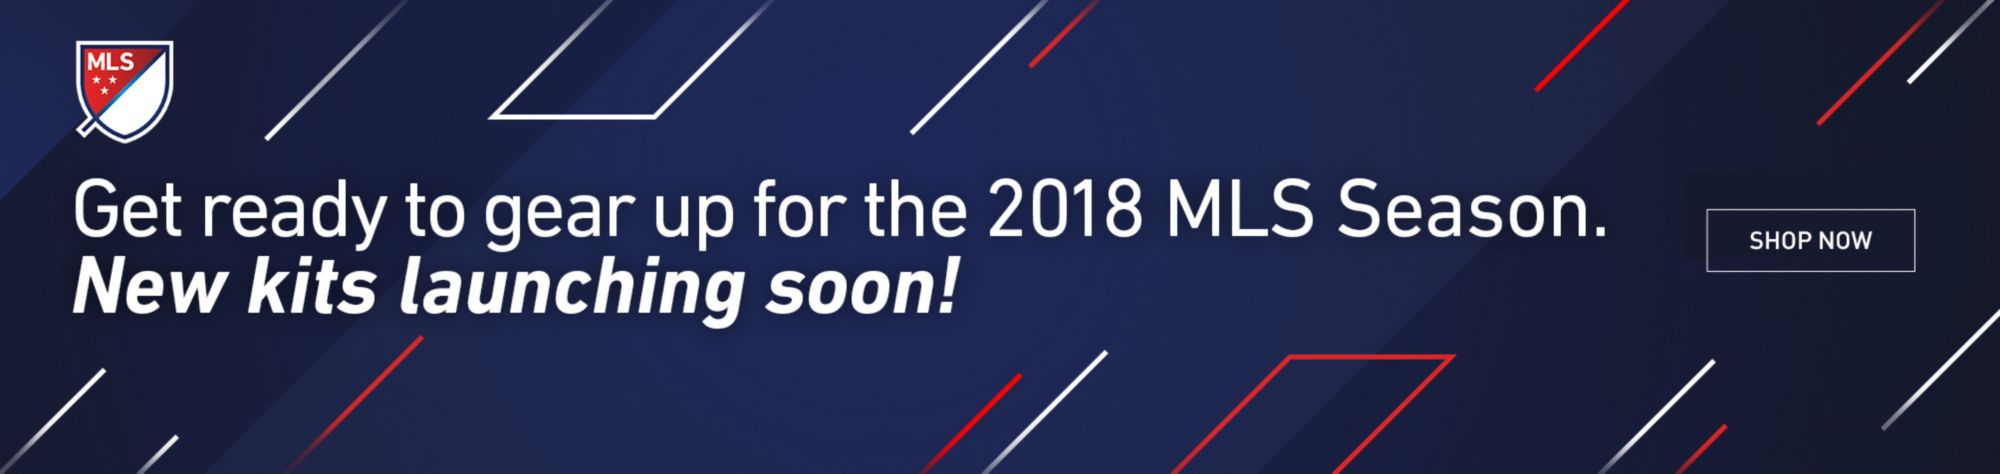 Get ready to gear up for the 2018 MLS Season. New kits launching soon! - Shop Now